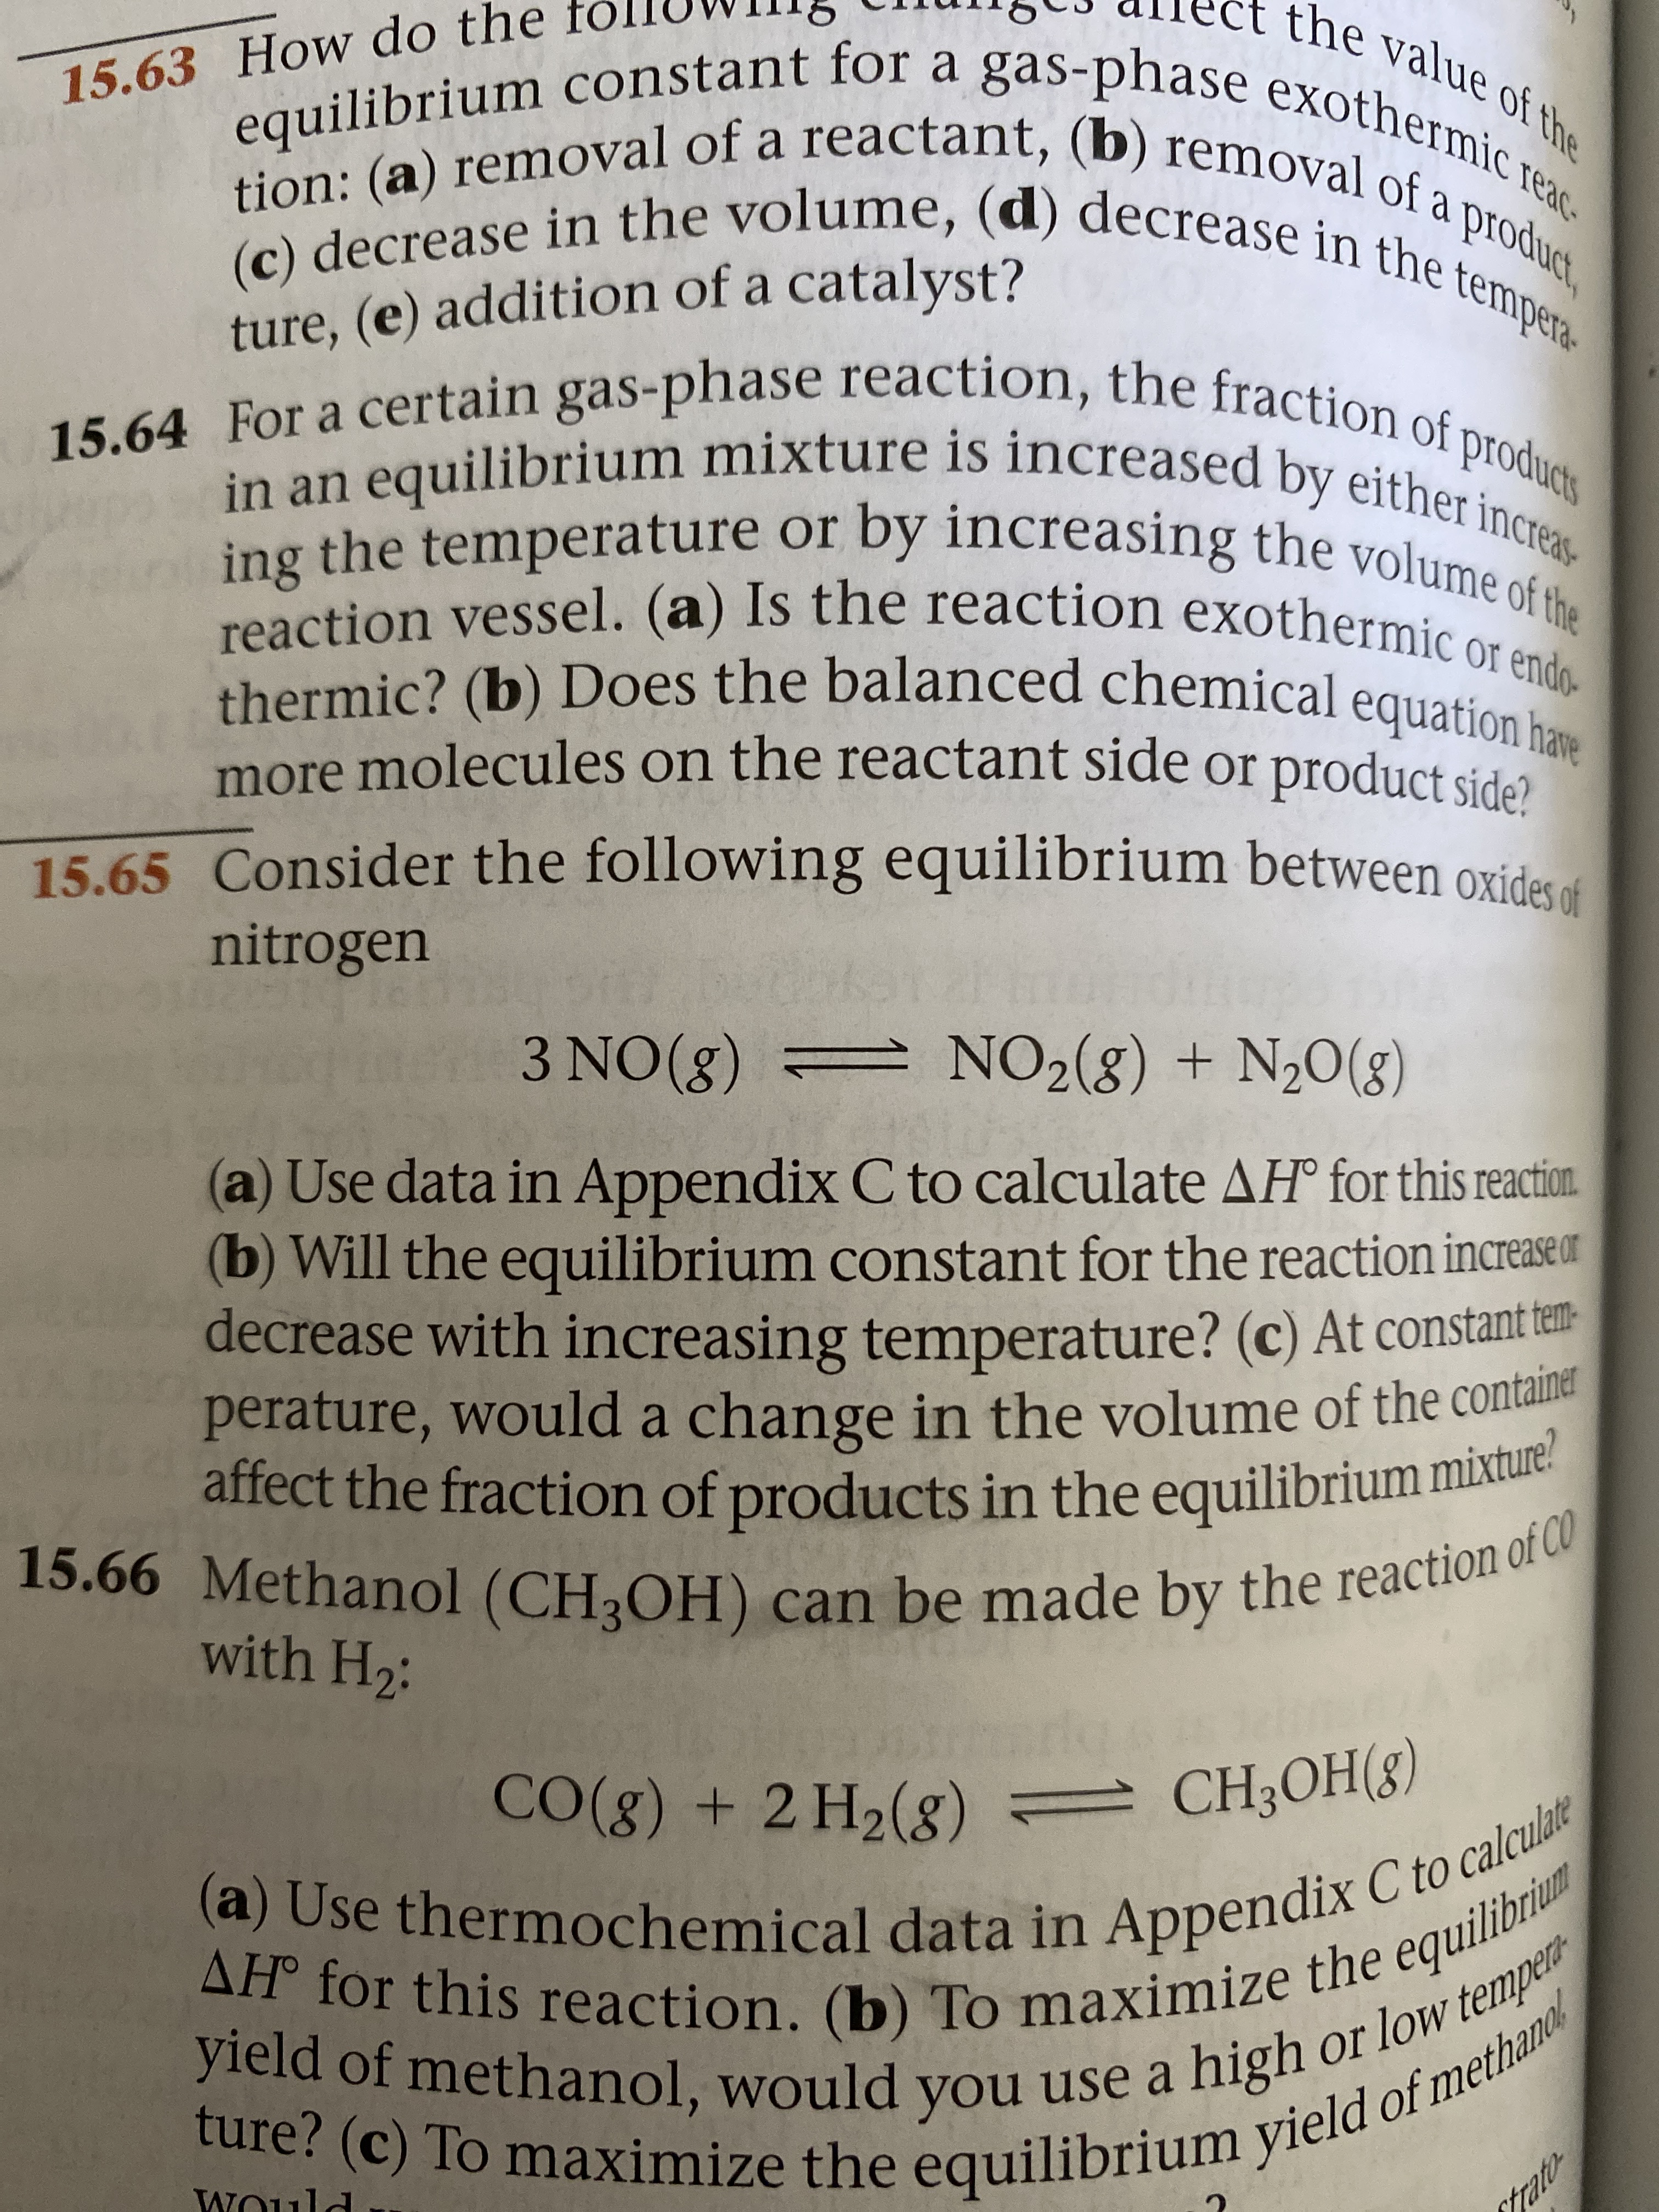 For a certain gas-phase reaction, the fraction as in an equilibrium mixture is increased by either increas ing the temperature or by increasing the vel Vol